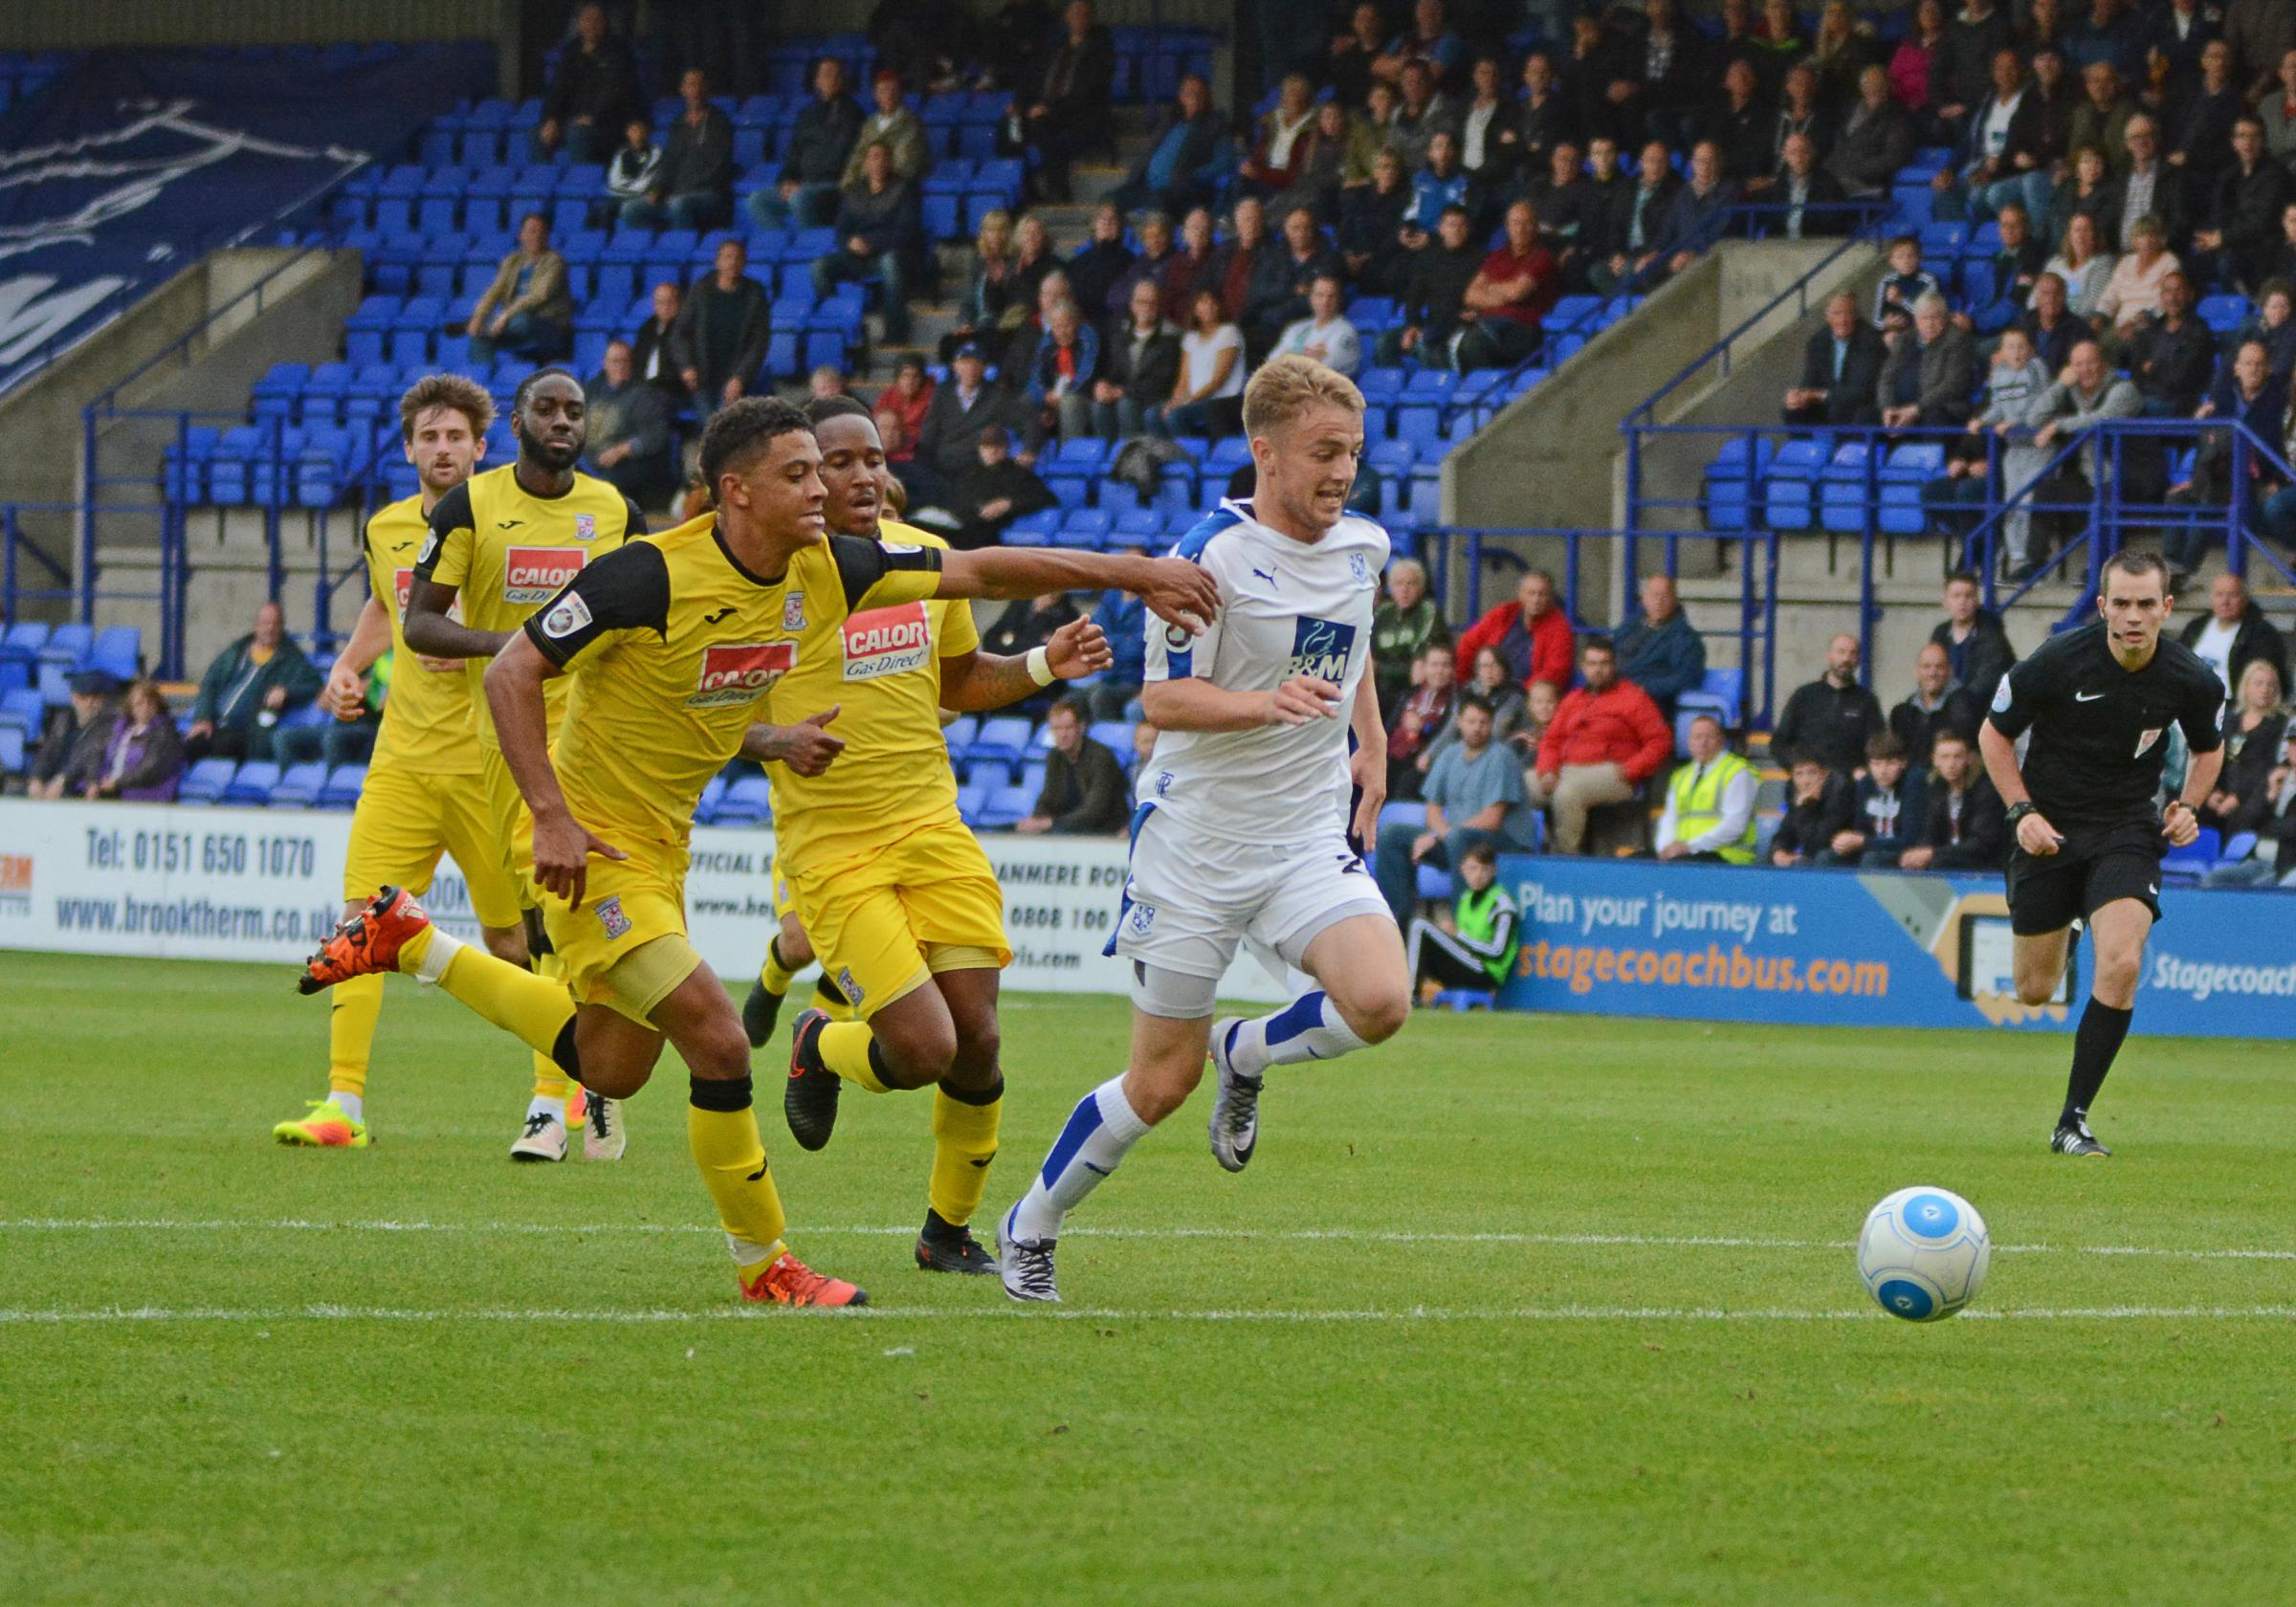 Interim boss Carden steers Tranmere to victory over Woking | Wirral